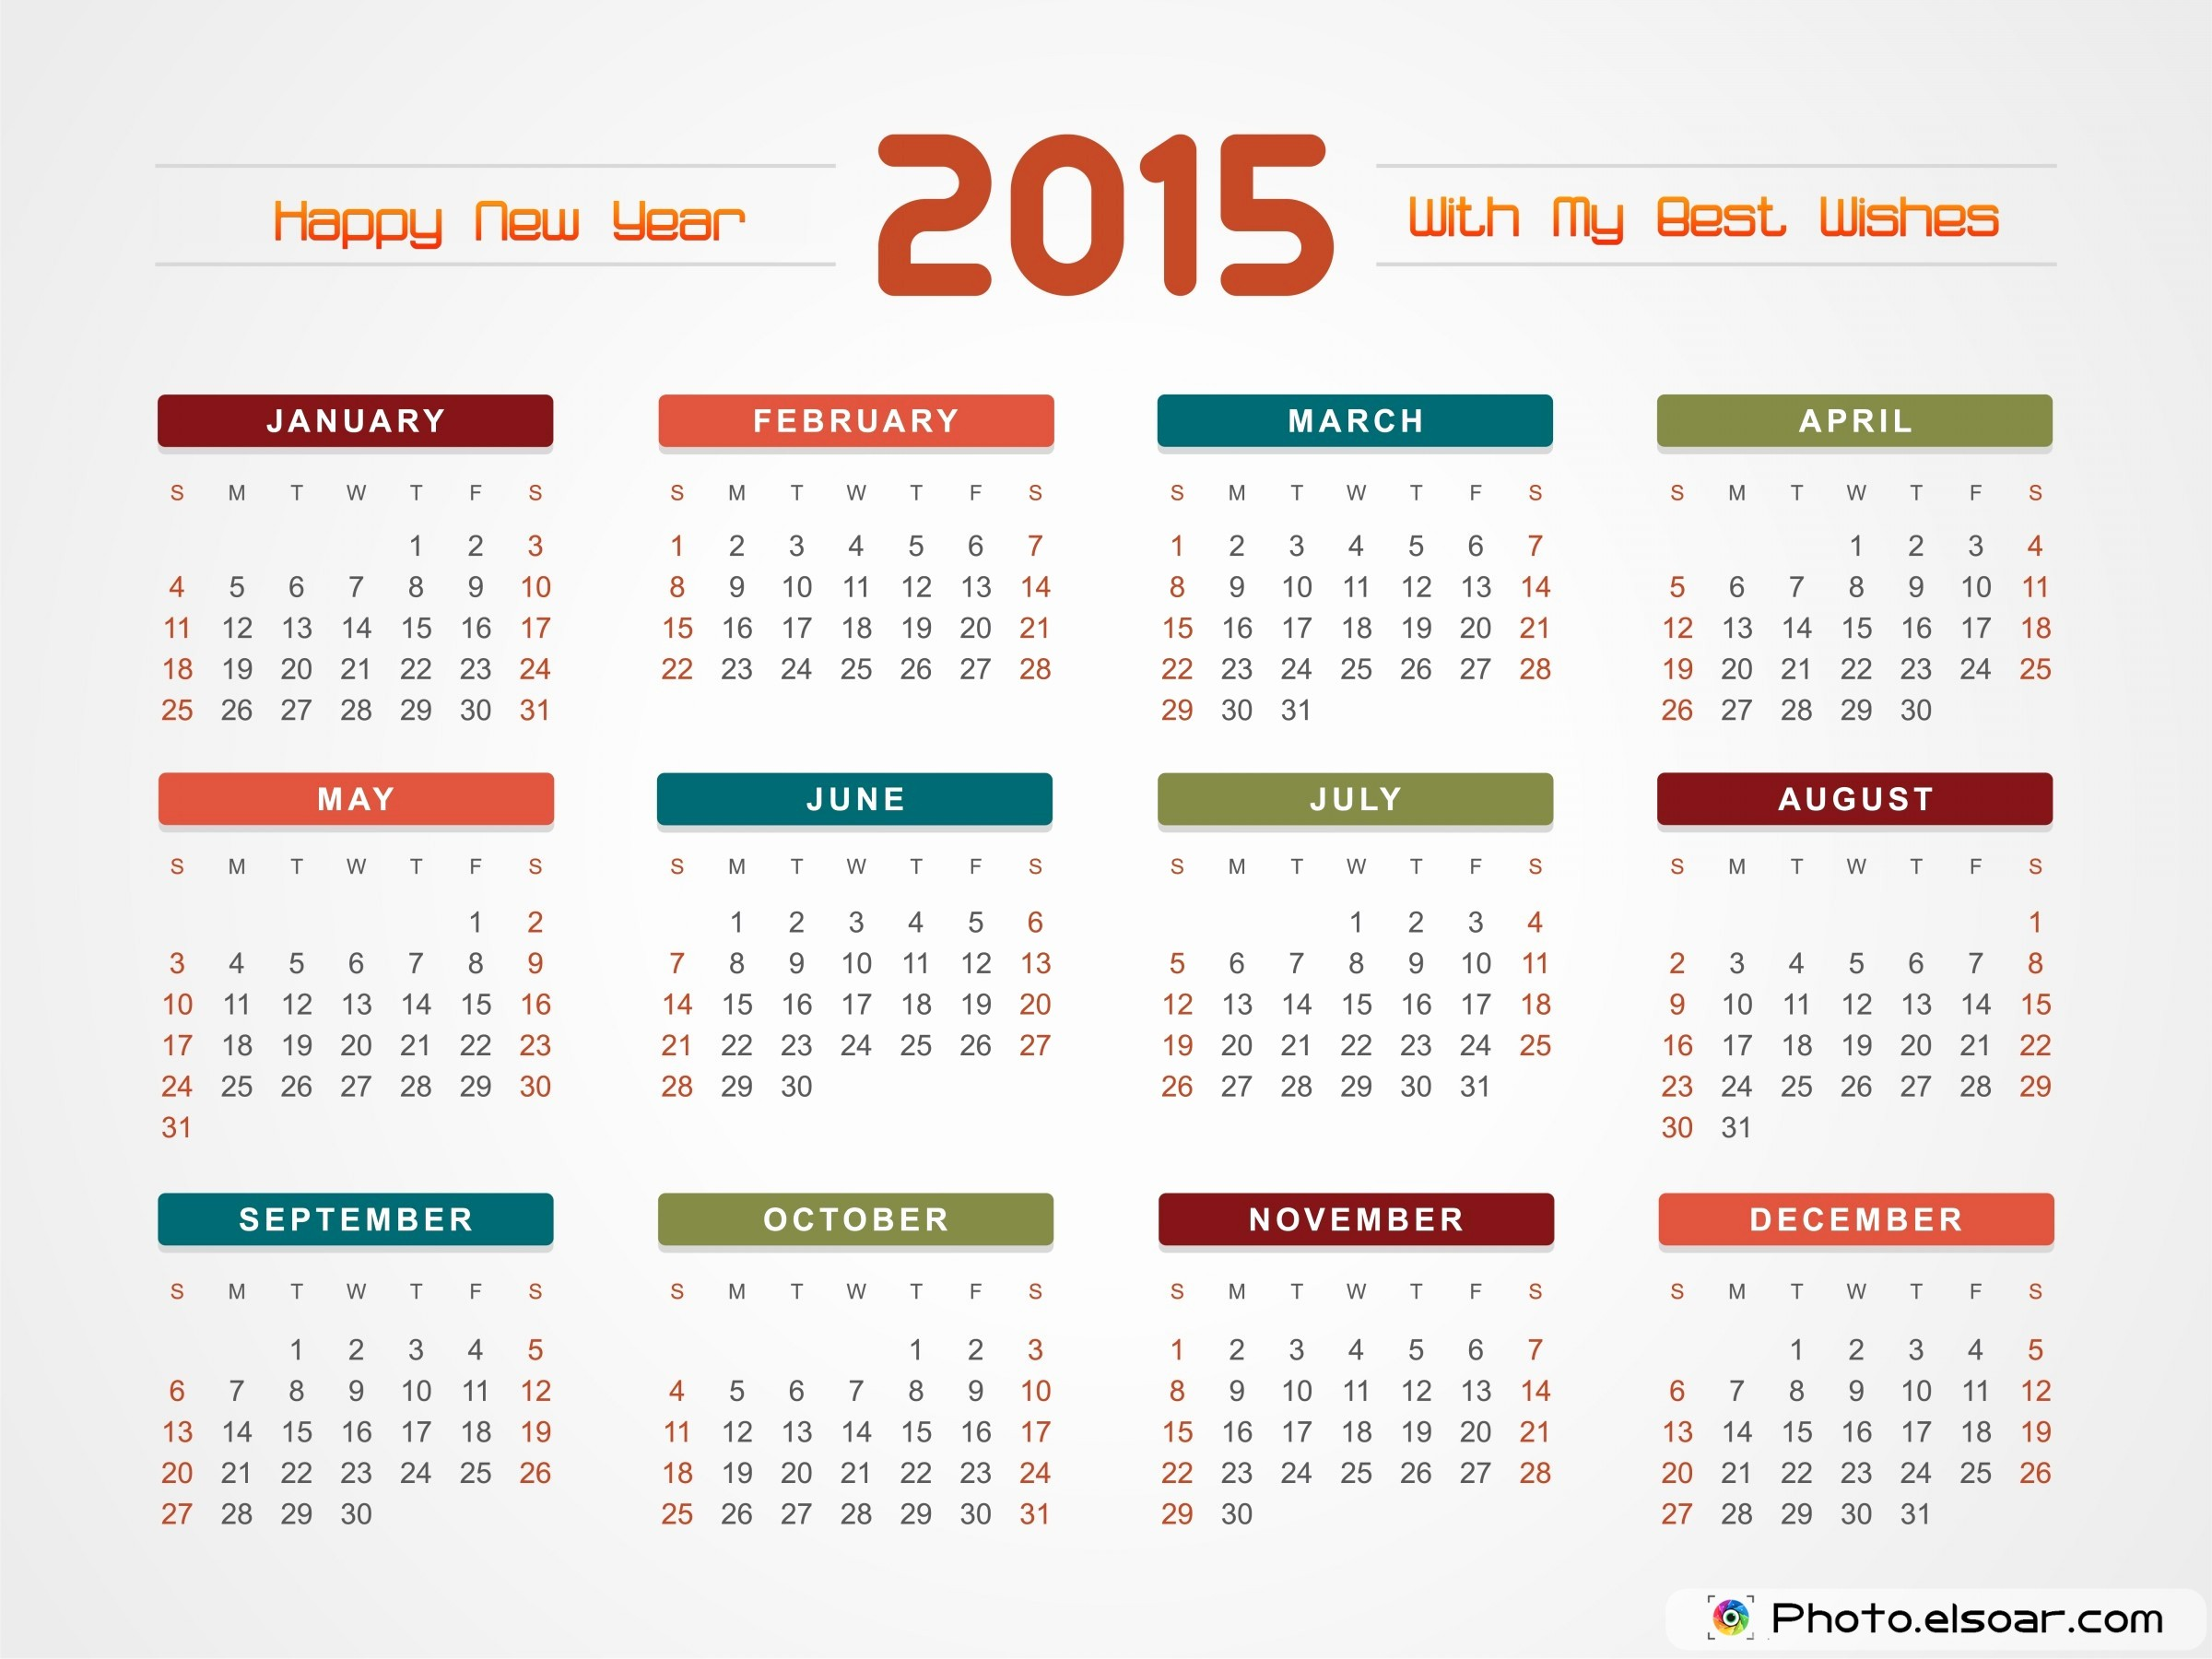 Full Year Calendar Template 2015 Inspirational 2015 Calendars Mixed Designs Ready for Use Elsoar